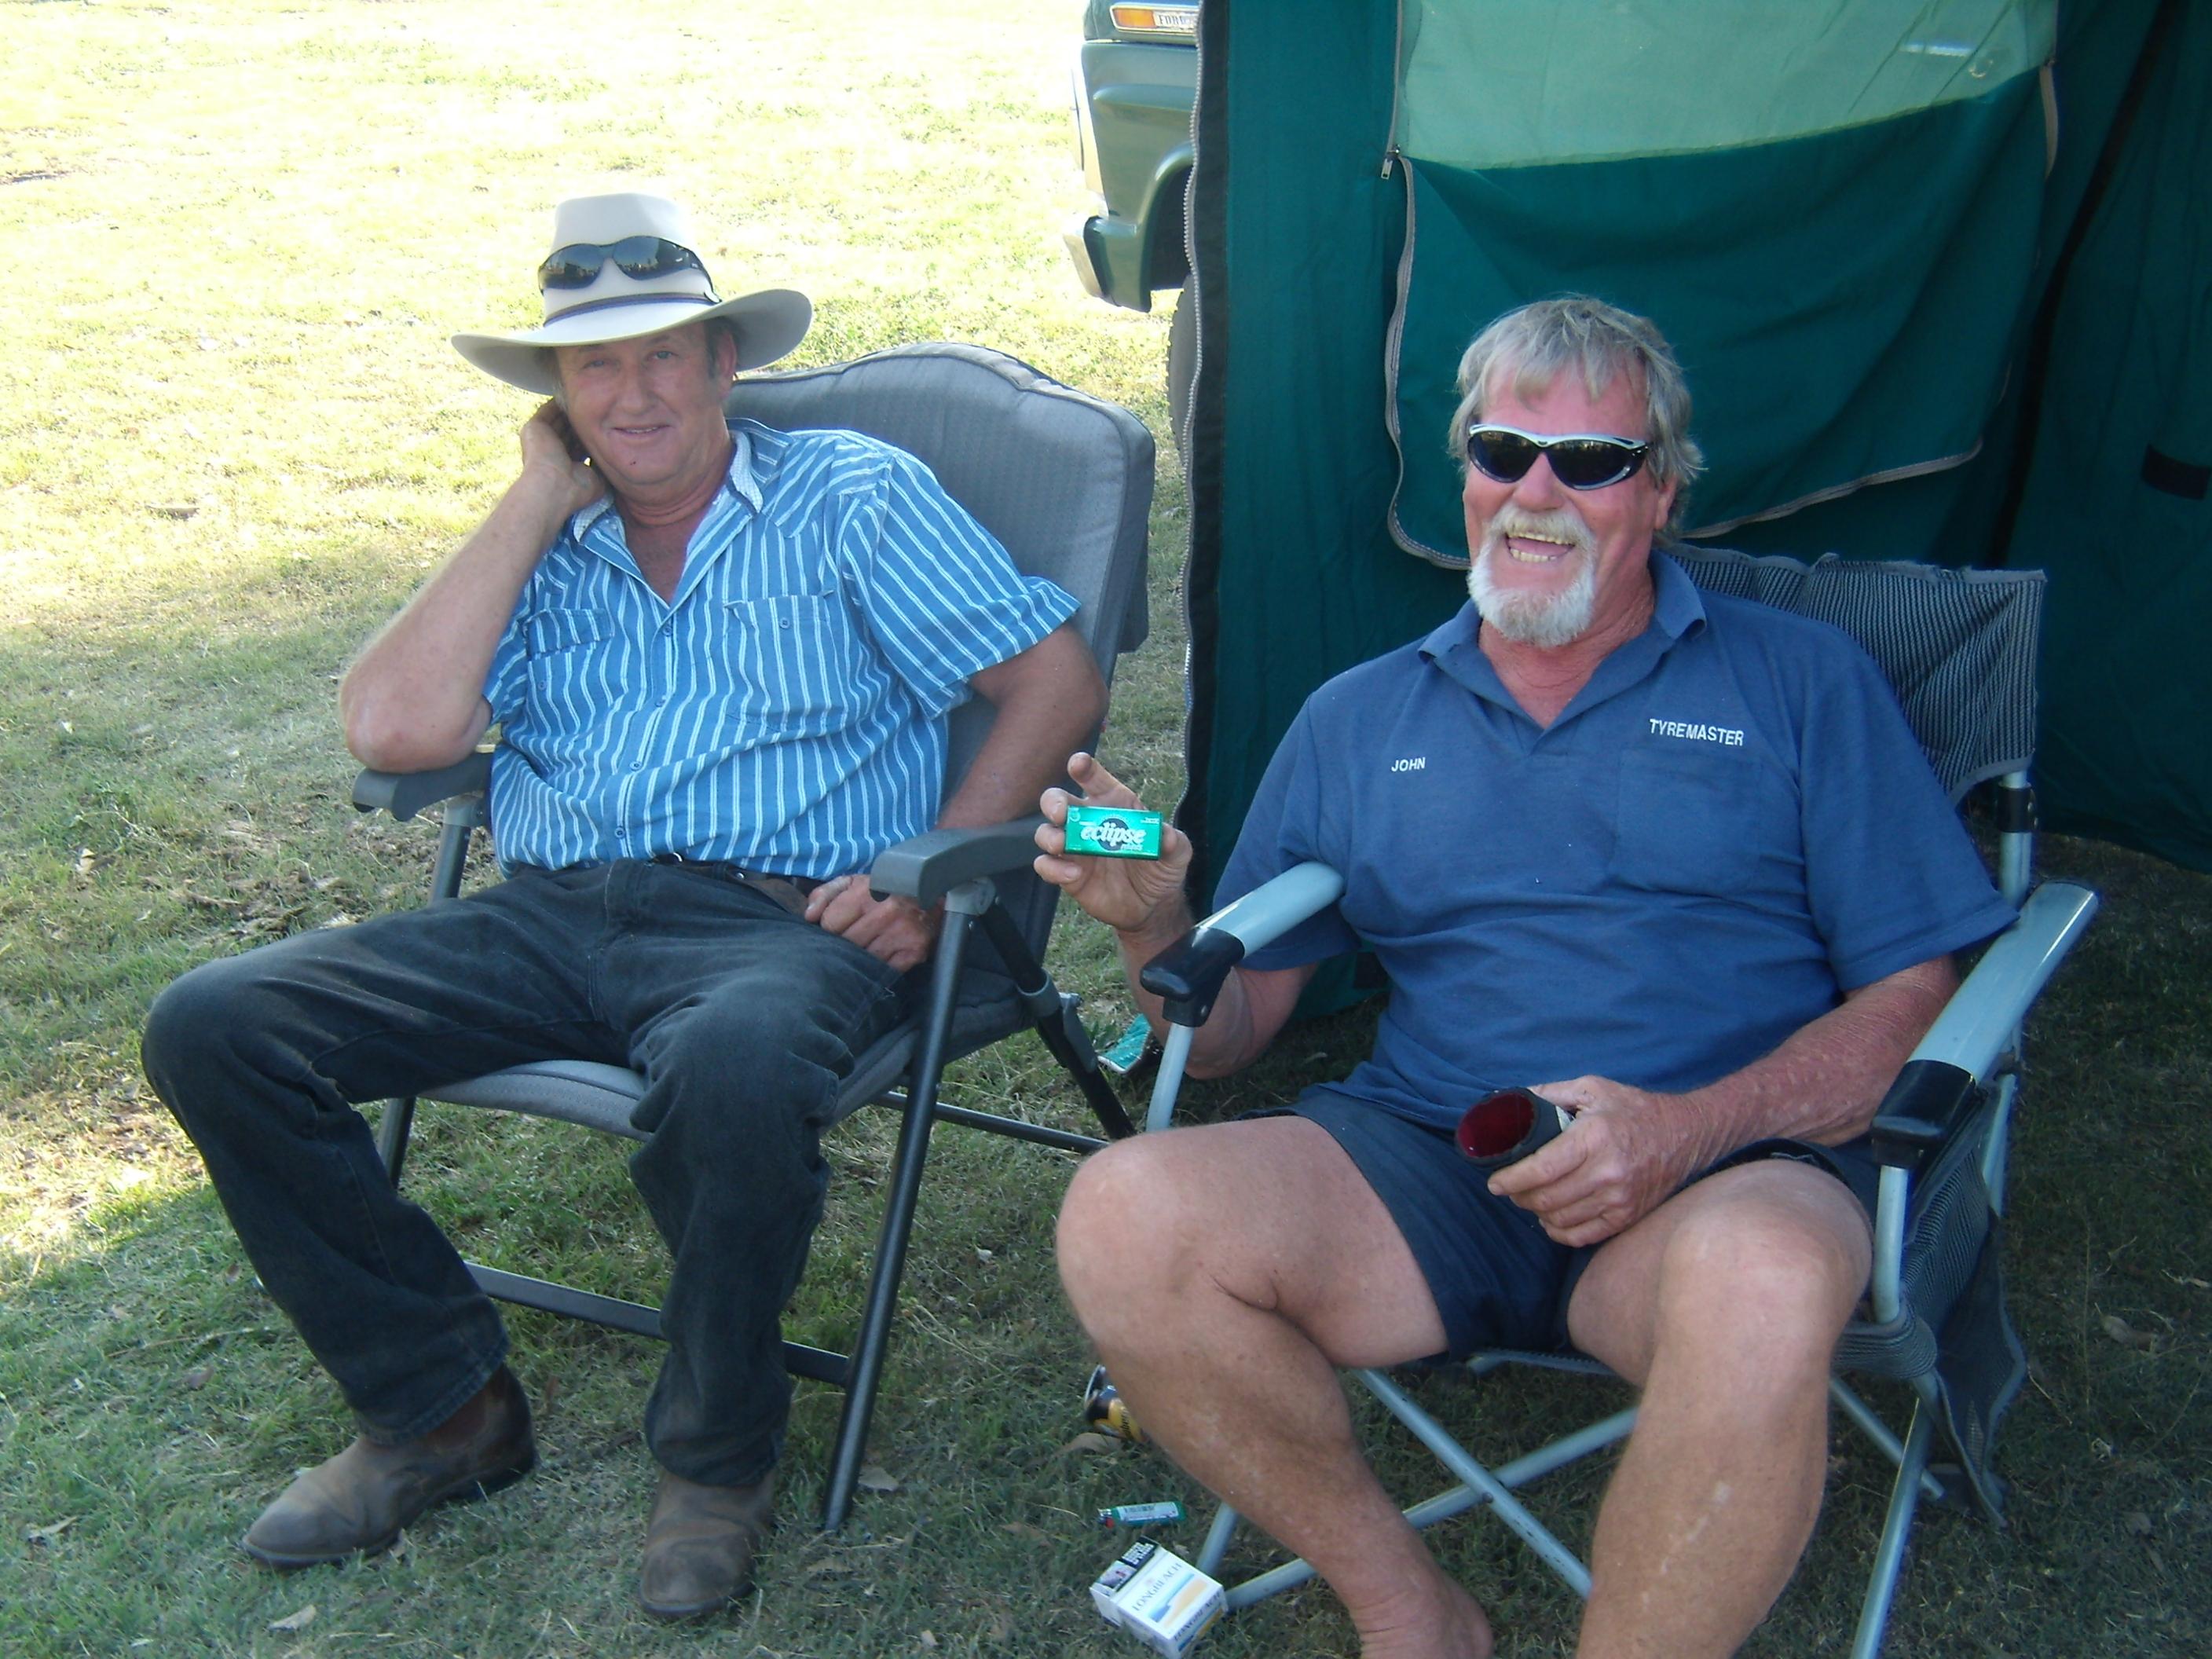 Geoff Dean and John Tully enjoying an afternoon of relaxation